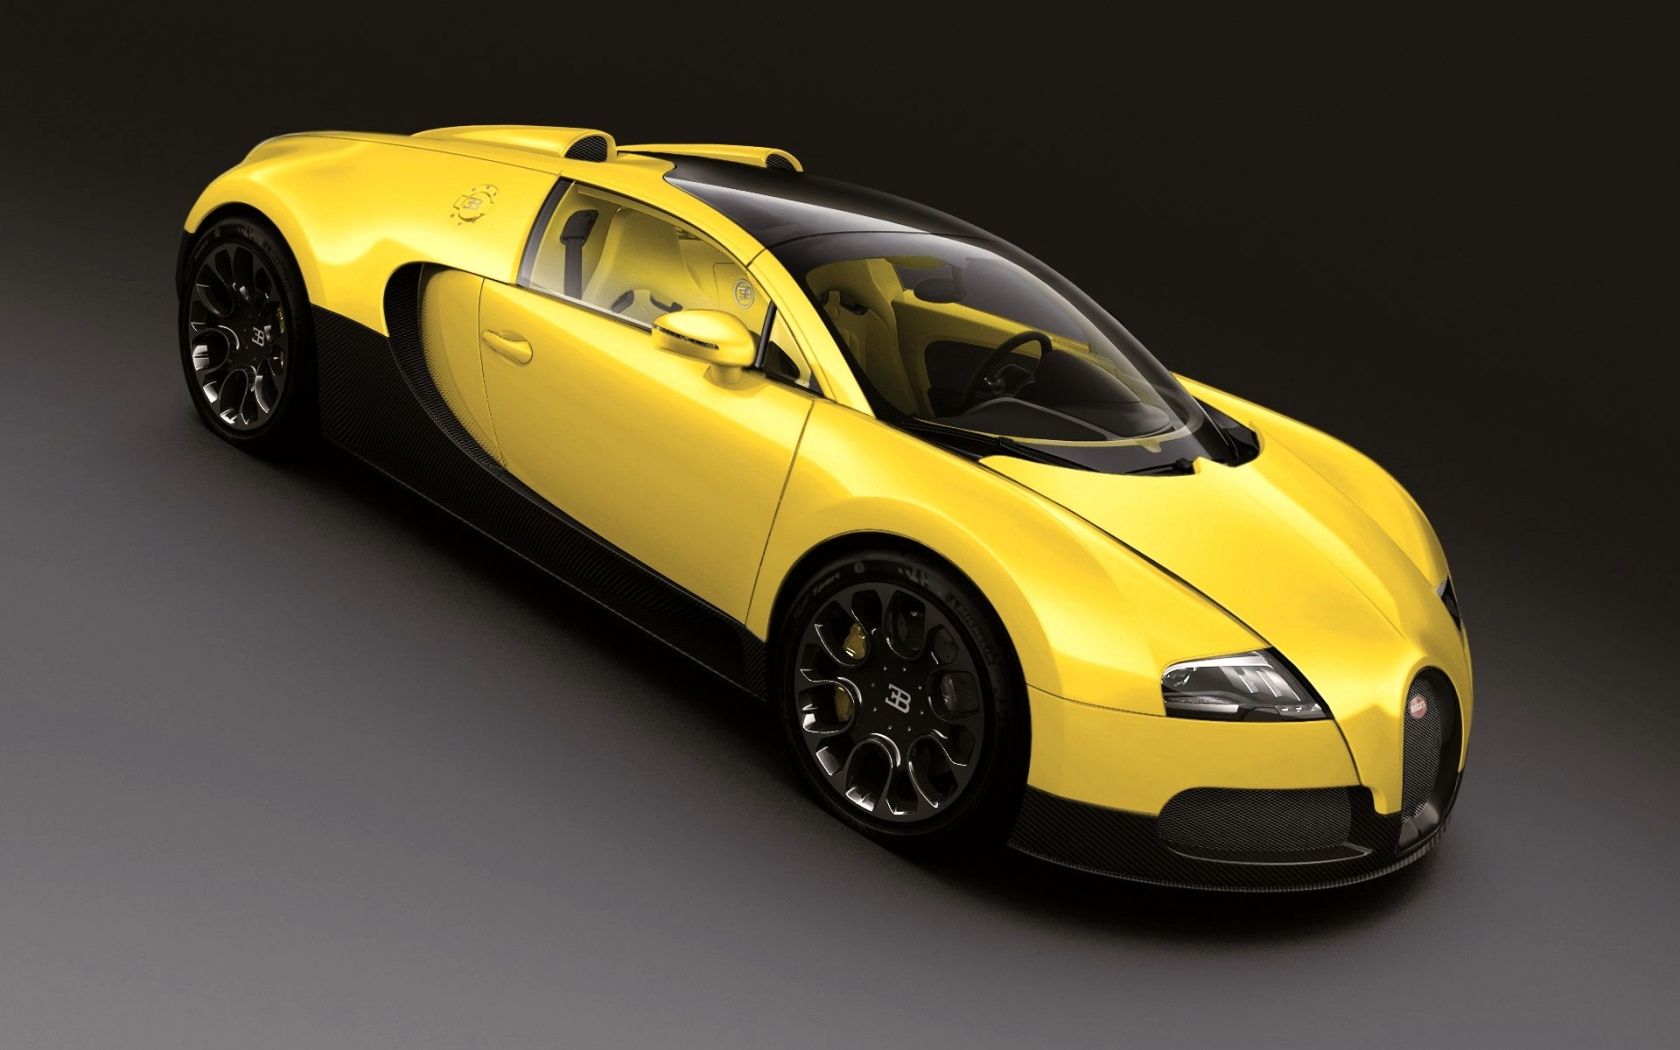 Wallpaper Bugatti Veyron Grand Sport: Bugatti Veyron 16.4 Grand Sport Wallpaper